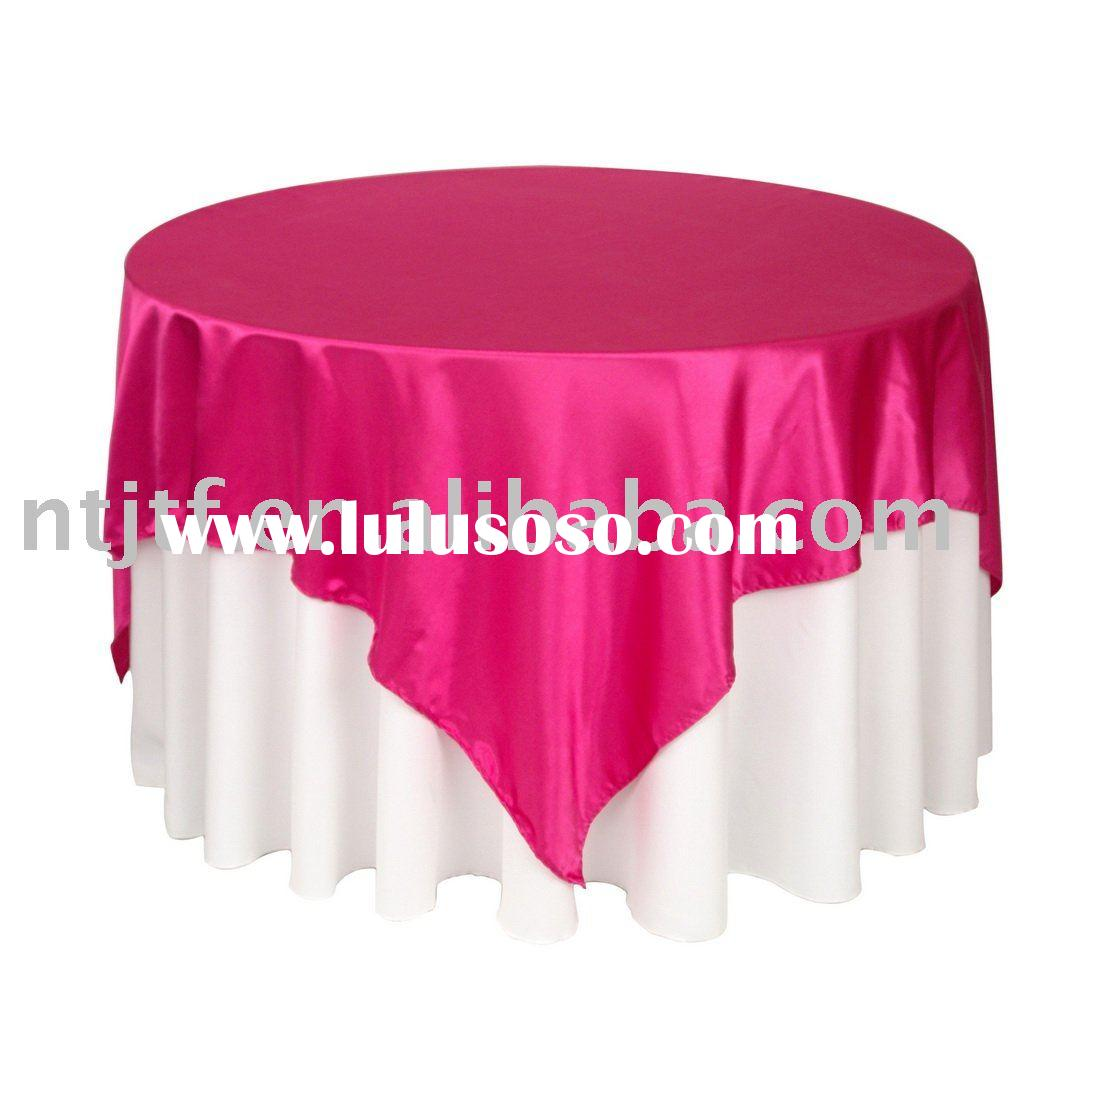 Table Cover , Satin Table Cloth Overlay . Table Linen For Weddings